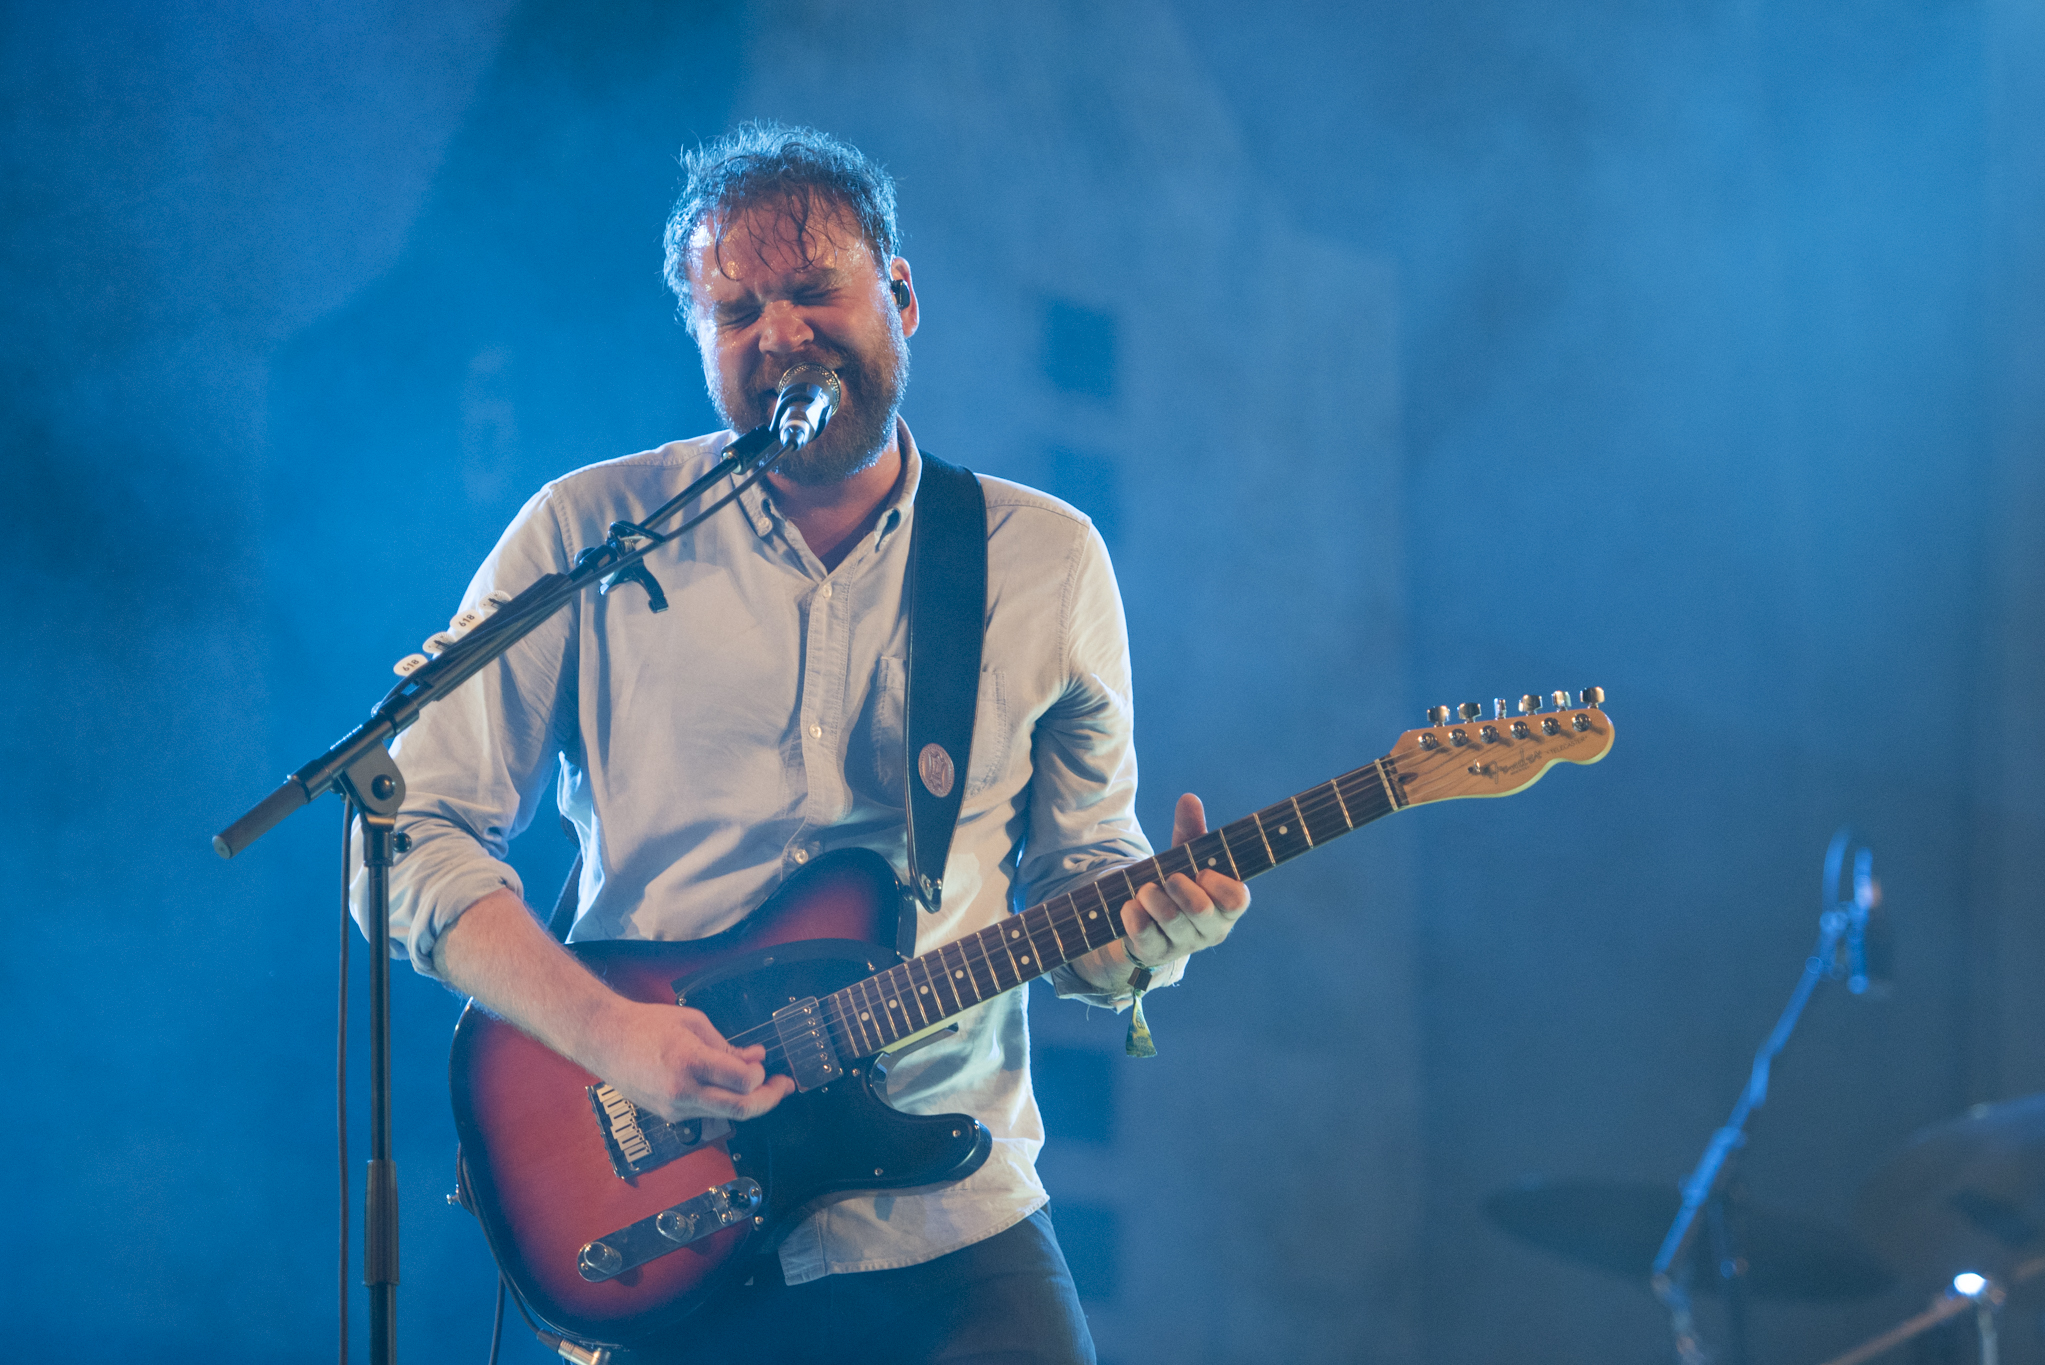 2000 Trees announce more acts including Frightened Rabbit and Black Honey